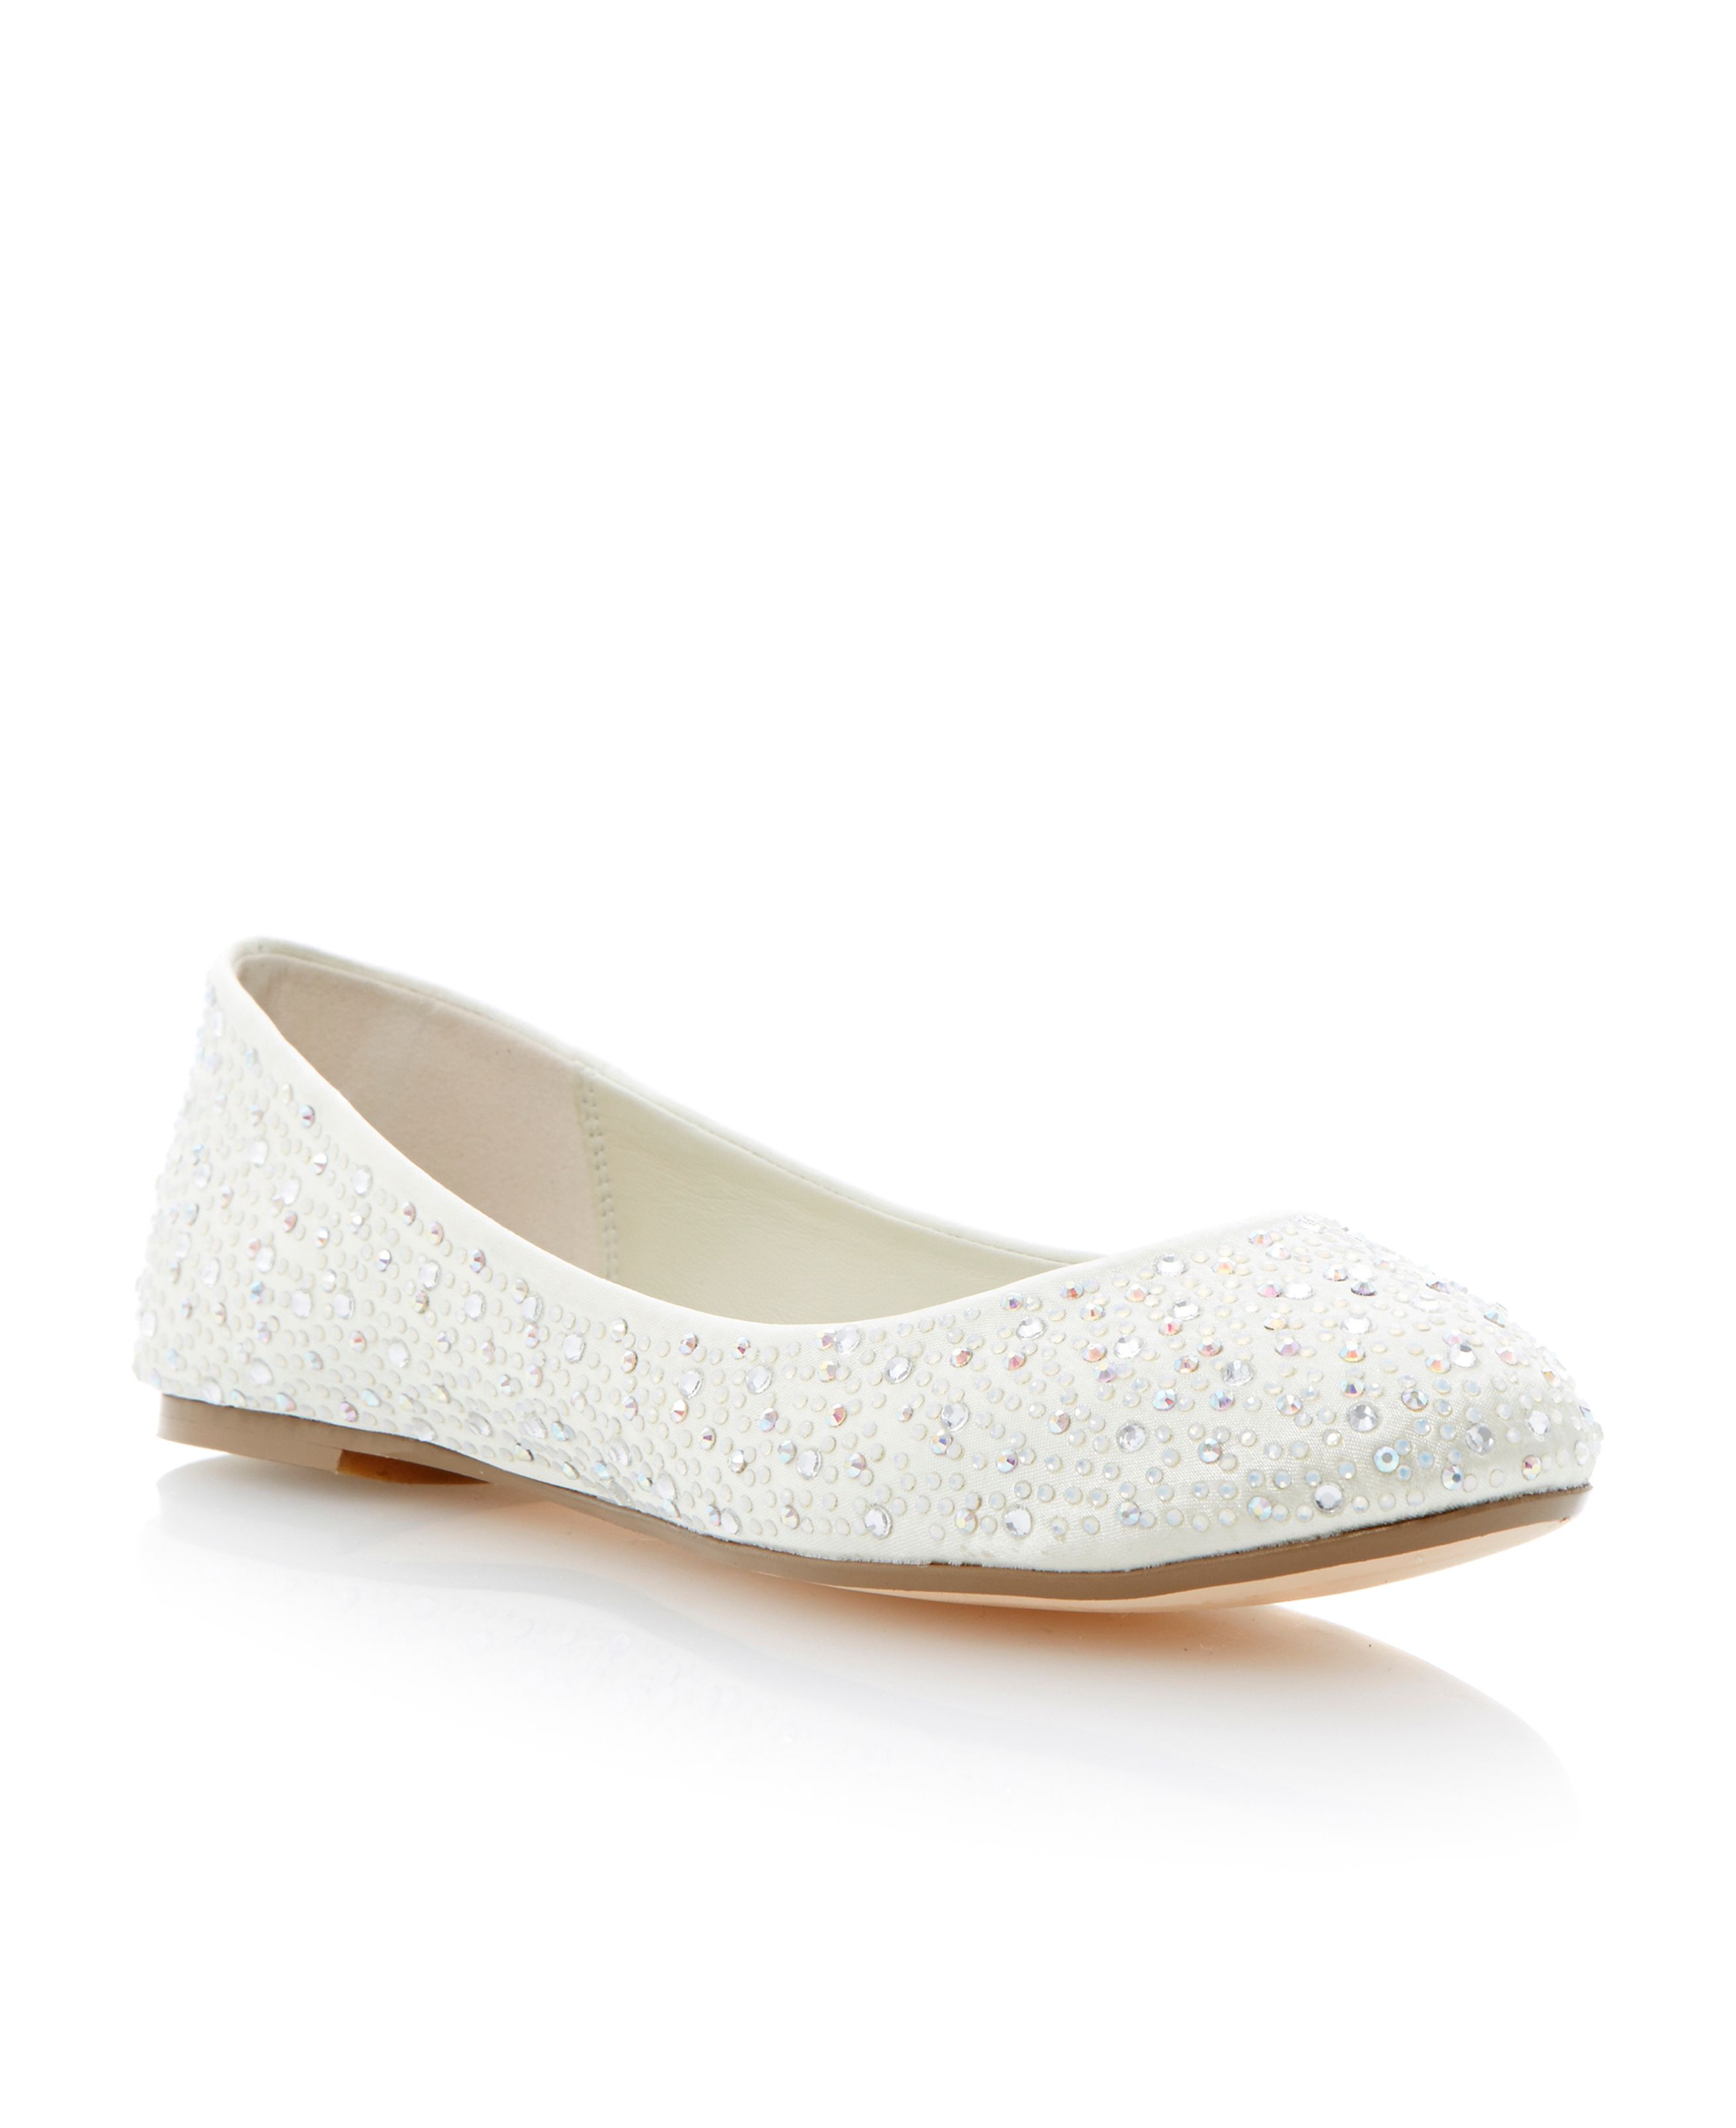 Marthas diamante embellished ballerina shoes